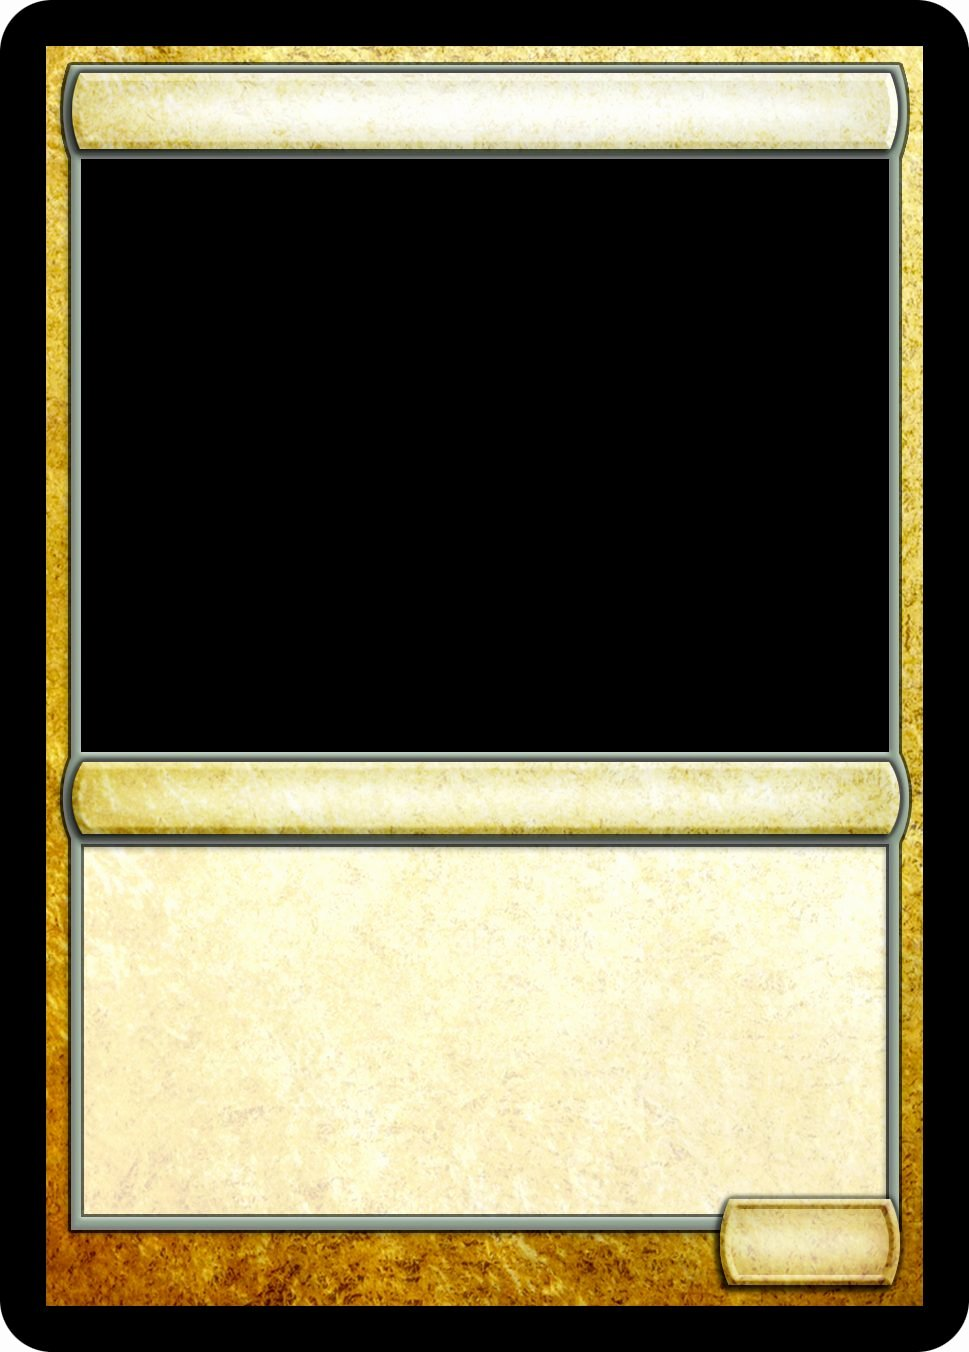 Blank Trading Card Template Luxury Magic Trading Card Template